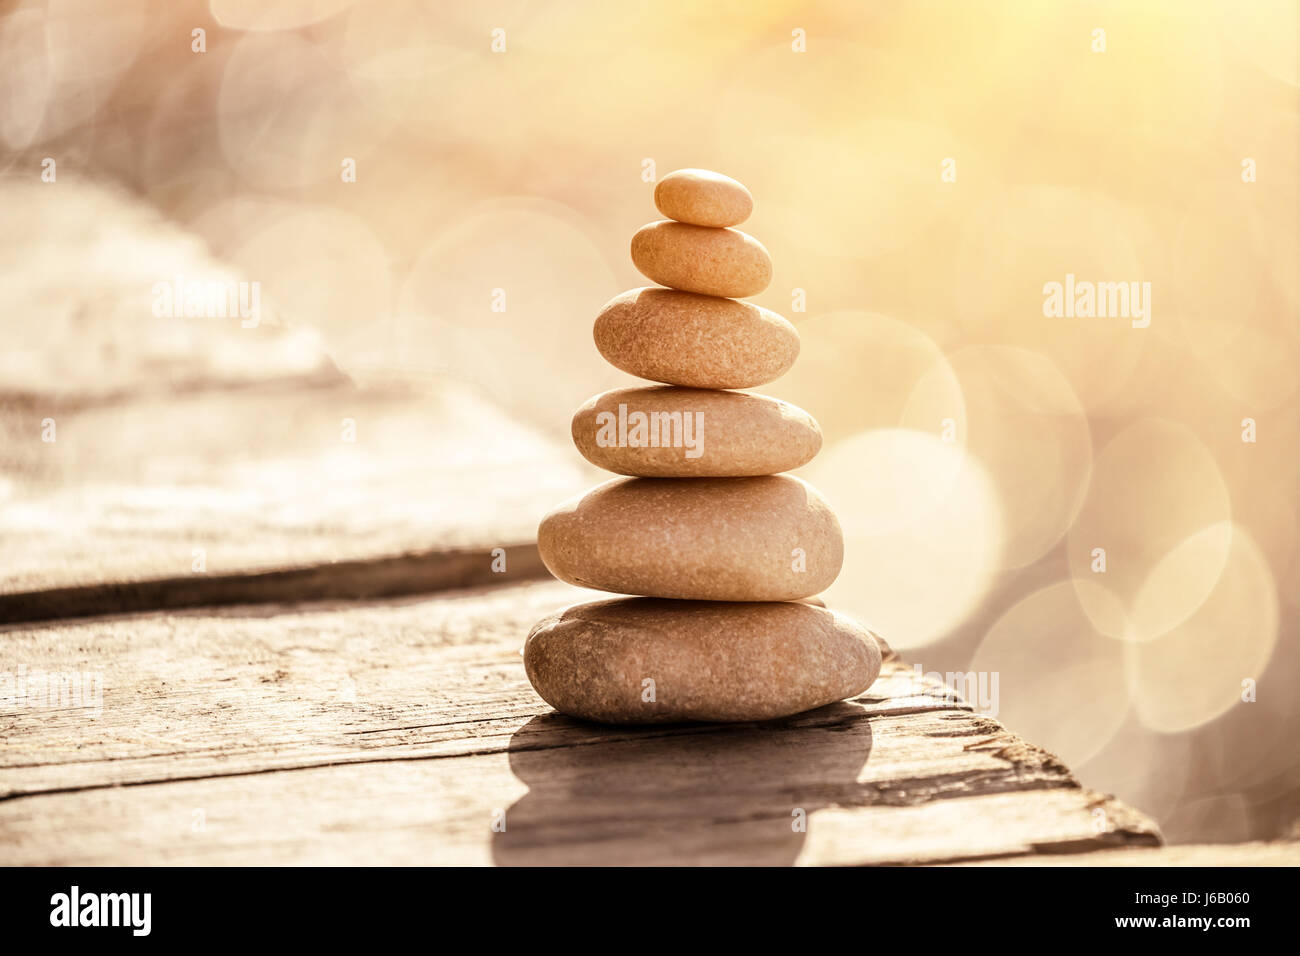 Spa stones still life on the beach, stack of pebbles on the boardwalk over sea in sunset light, peace and relaxation - Stock Image